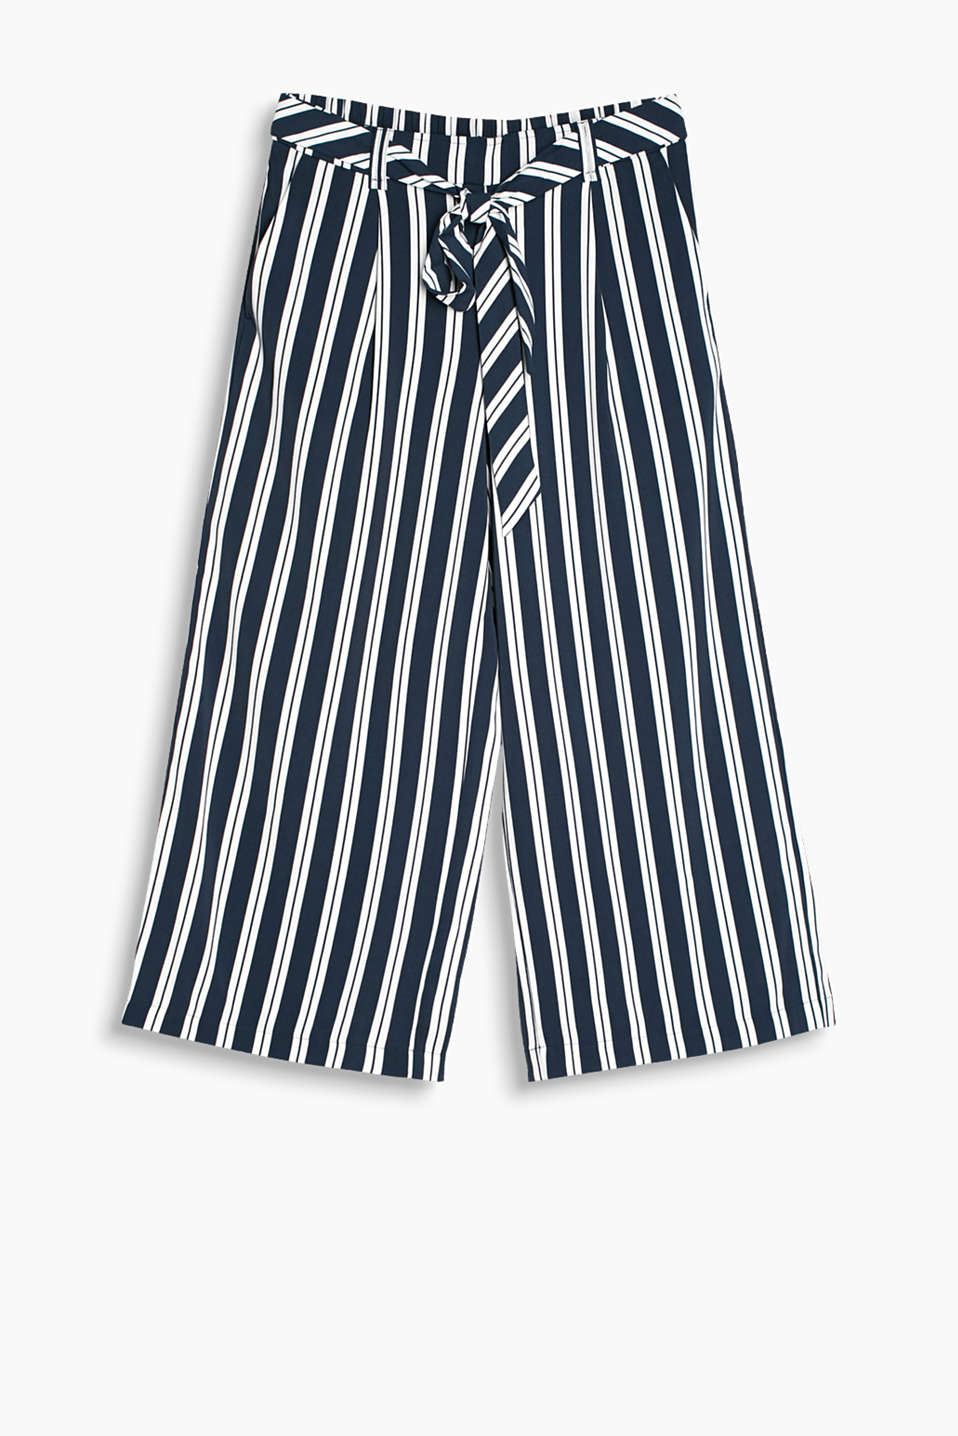 Striped culottes with an innovative waistband featuring elastic at the back and a fixed tie-around belt at the front